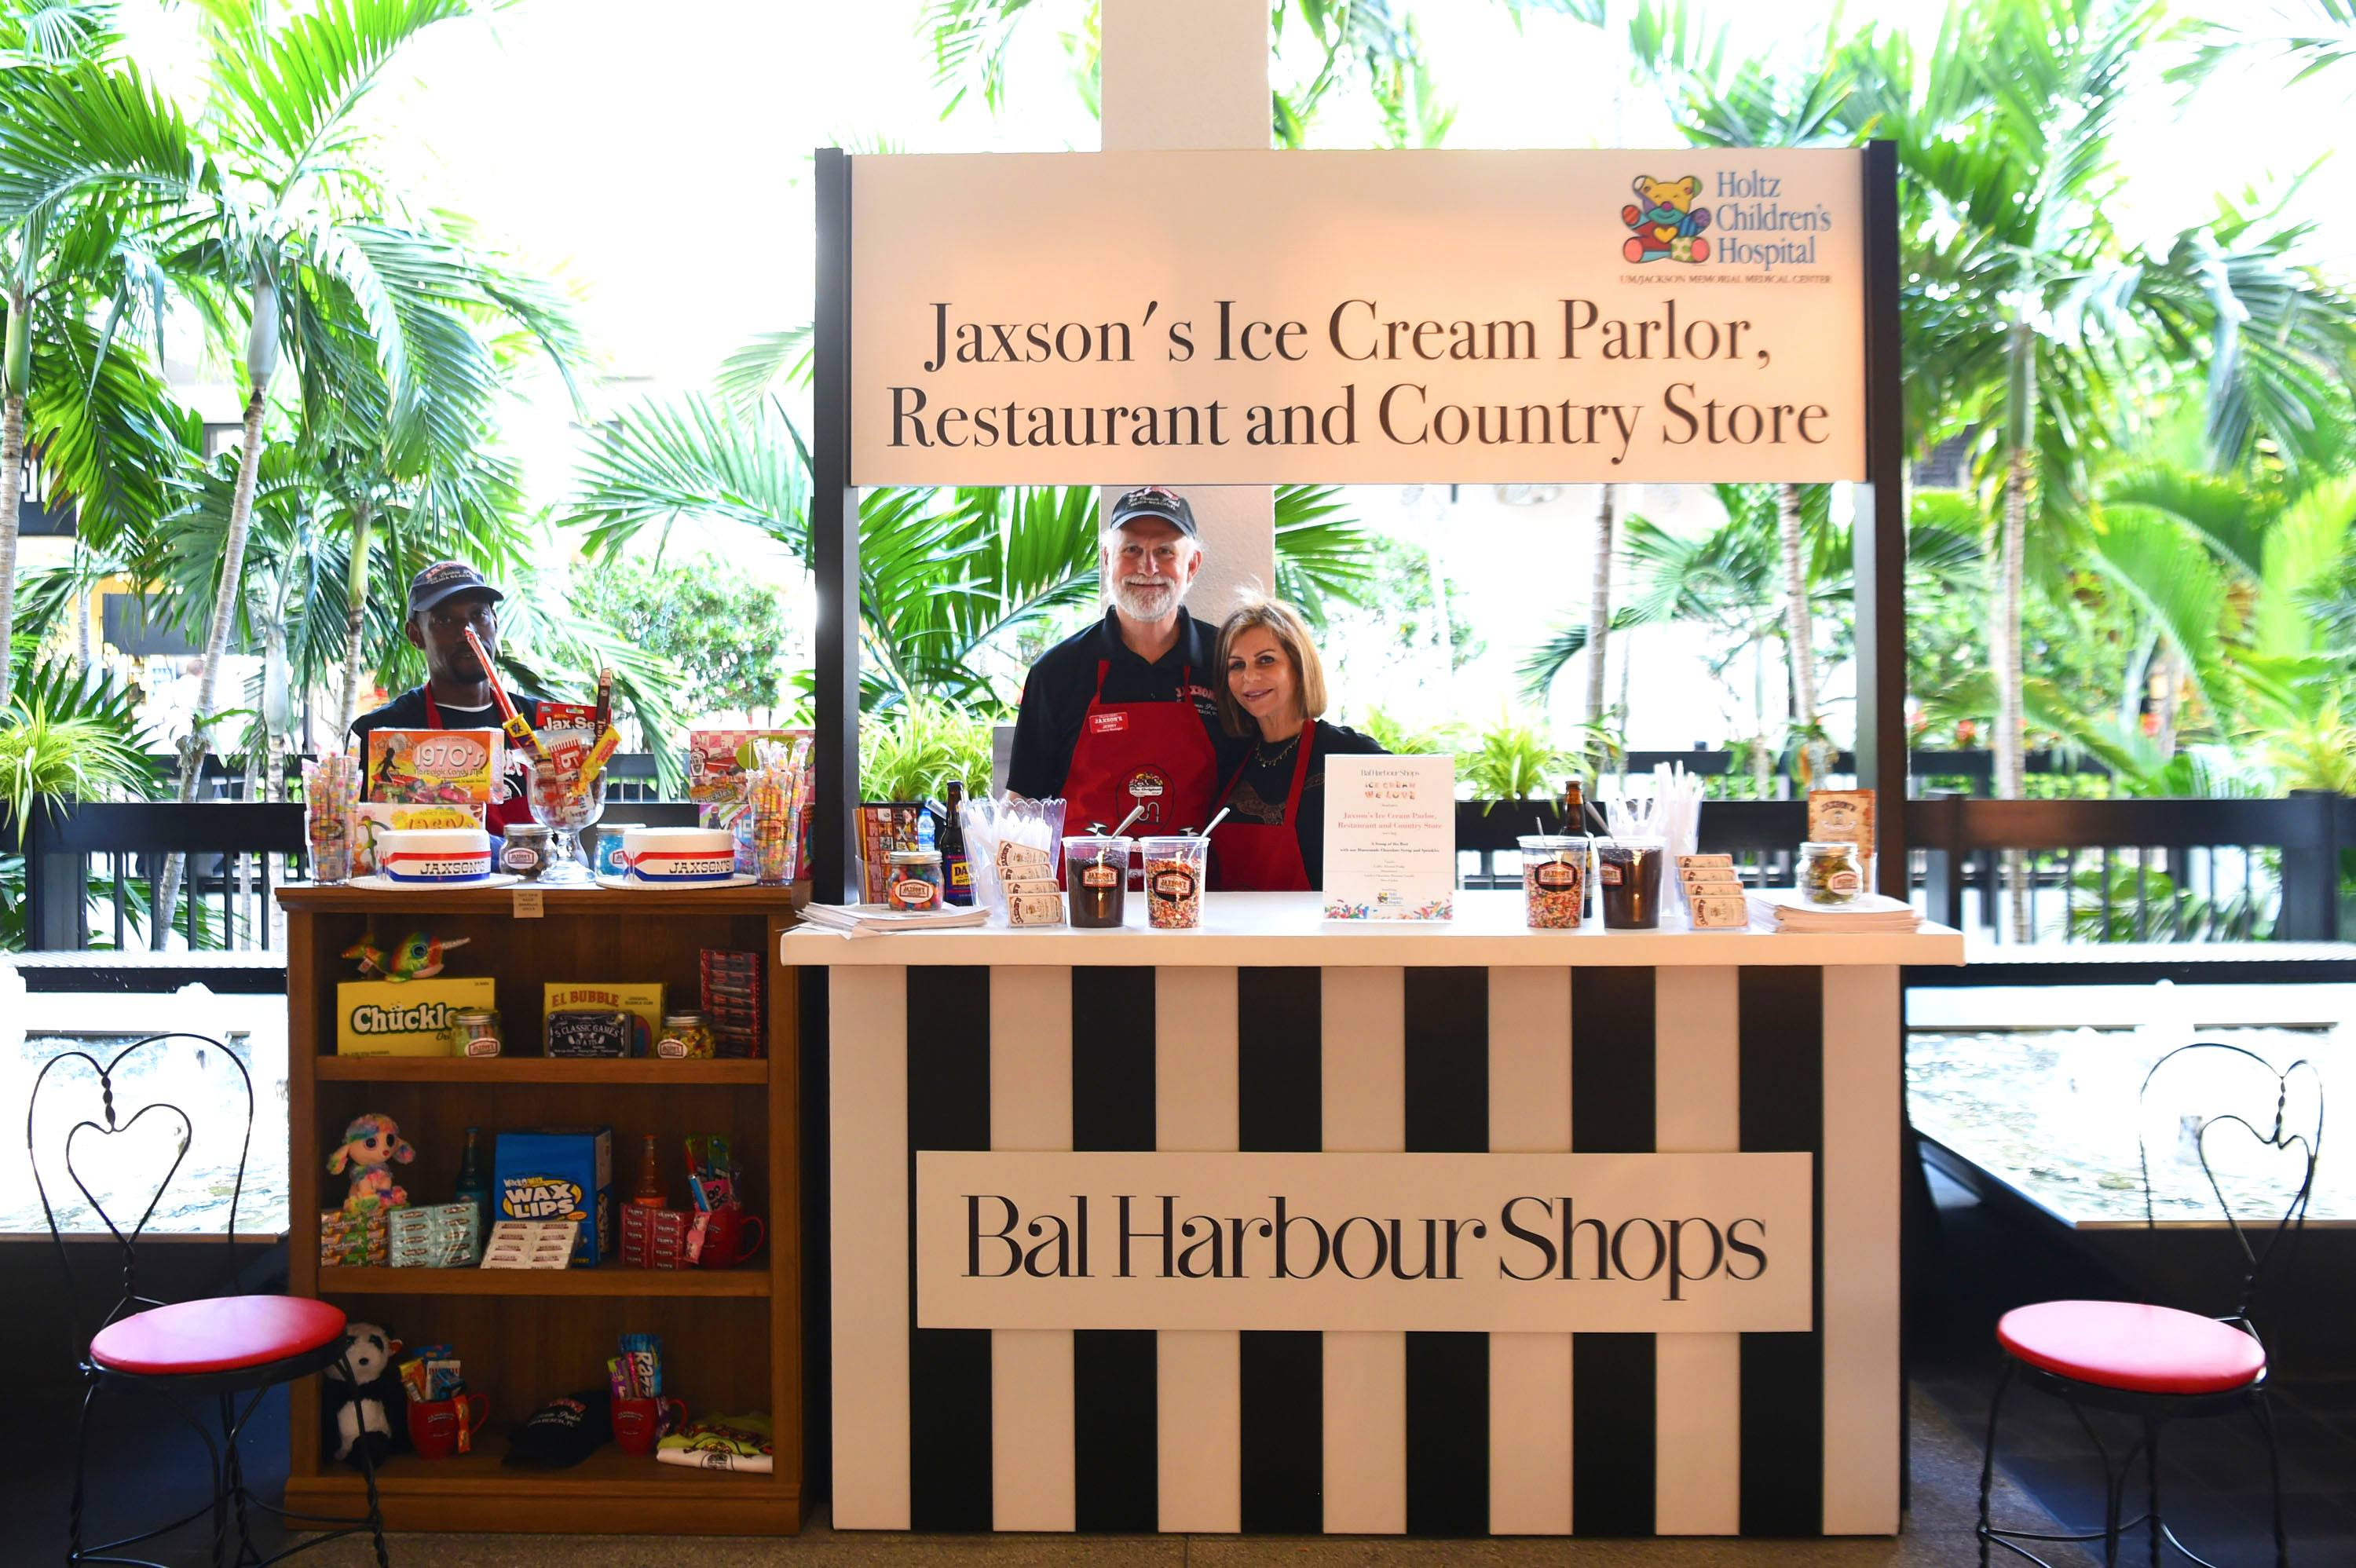 Jaxson's Ice Cream Parlor, Restaurant & Country Store